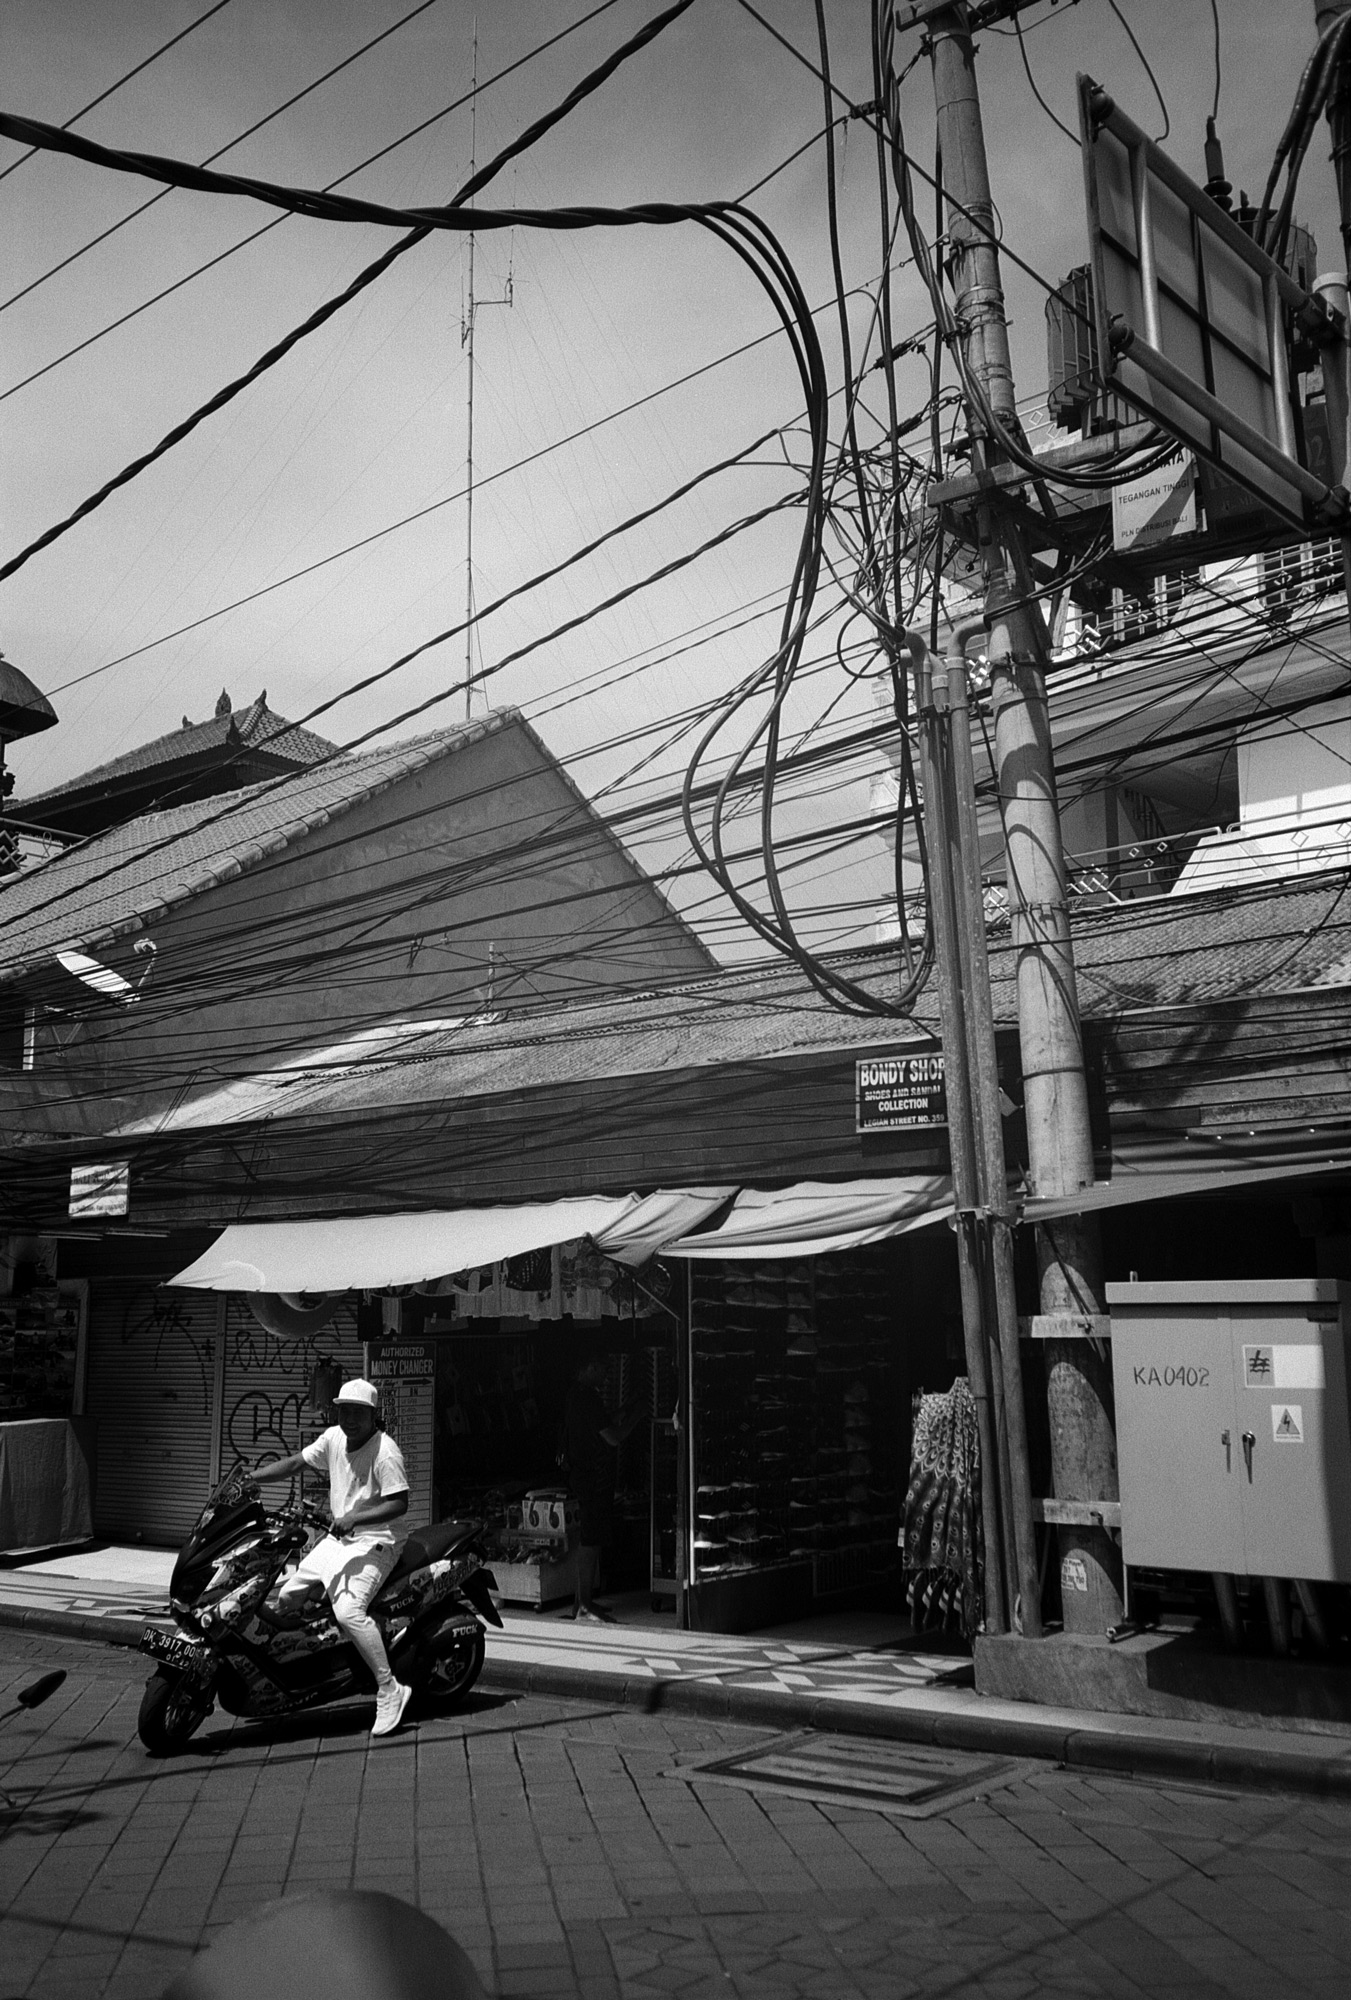 Biker, Kuta, Bali, Eastern Travels, Photography by Ioannis Koussertari